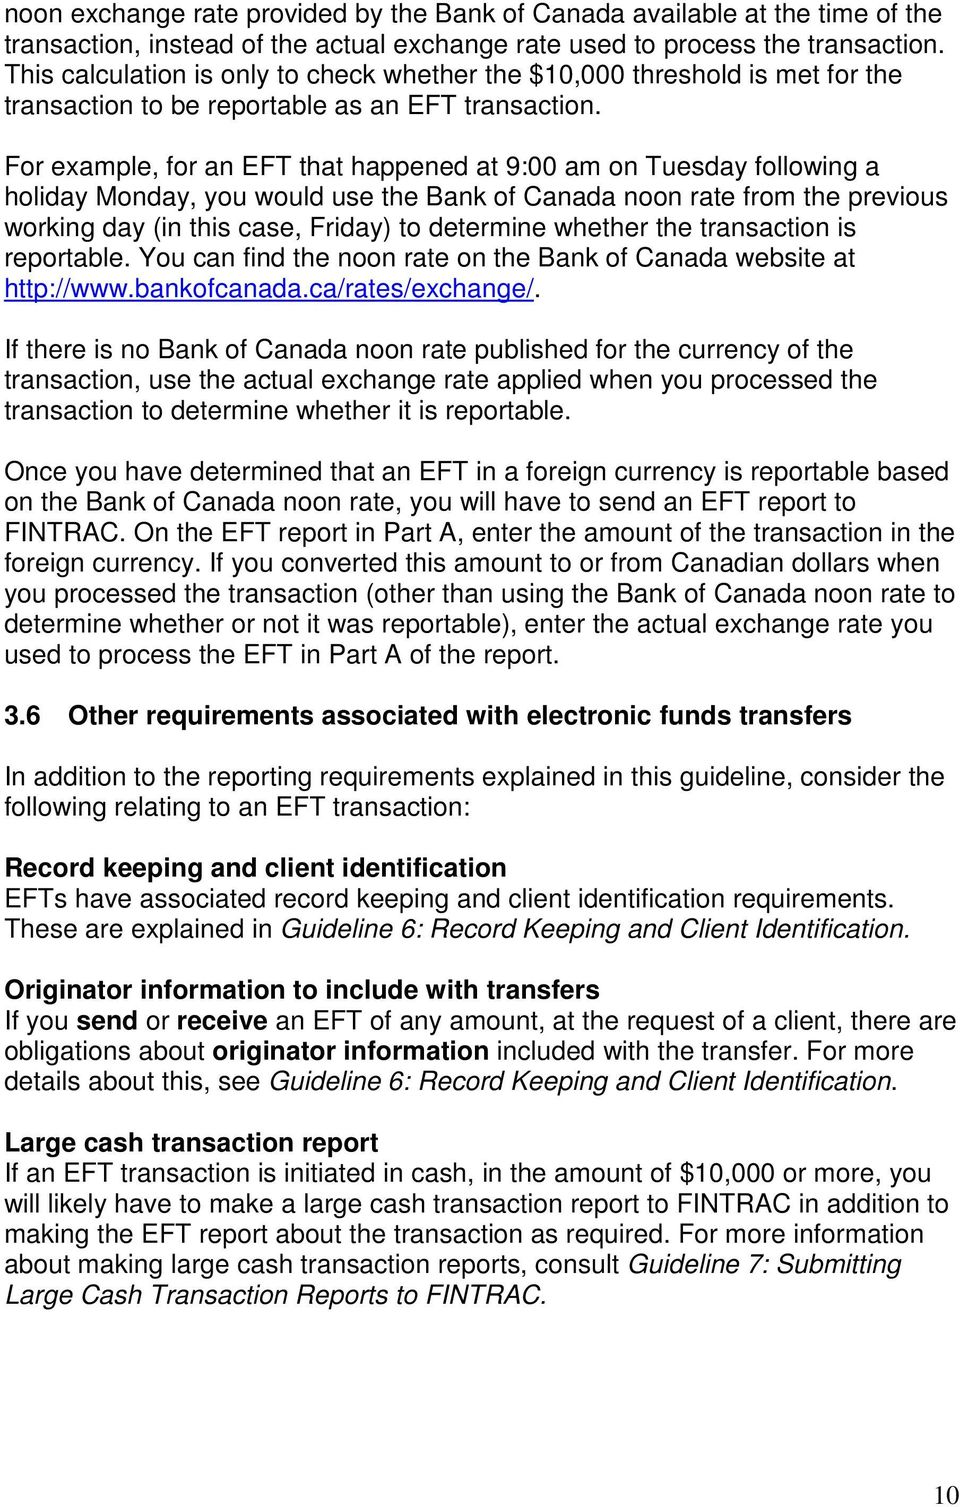 For example, for an EFT that happened at 9:00 am on Tuesday following a holiday Monday, you would use the Bank of Canada noon rate from the previous working day (in this case, Friday) to determine